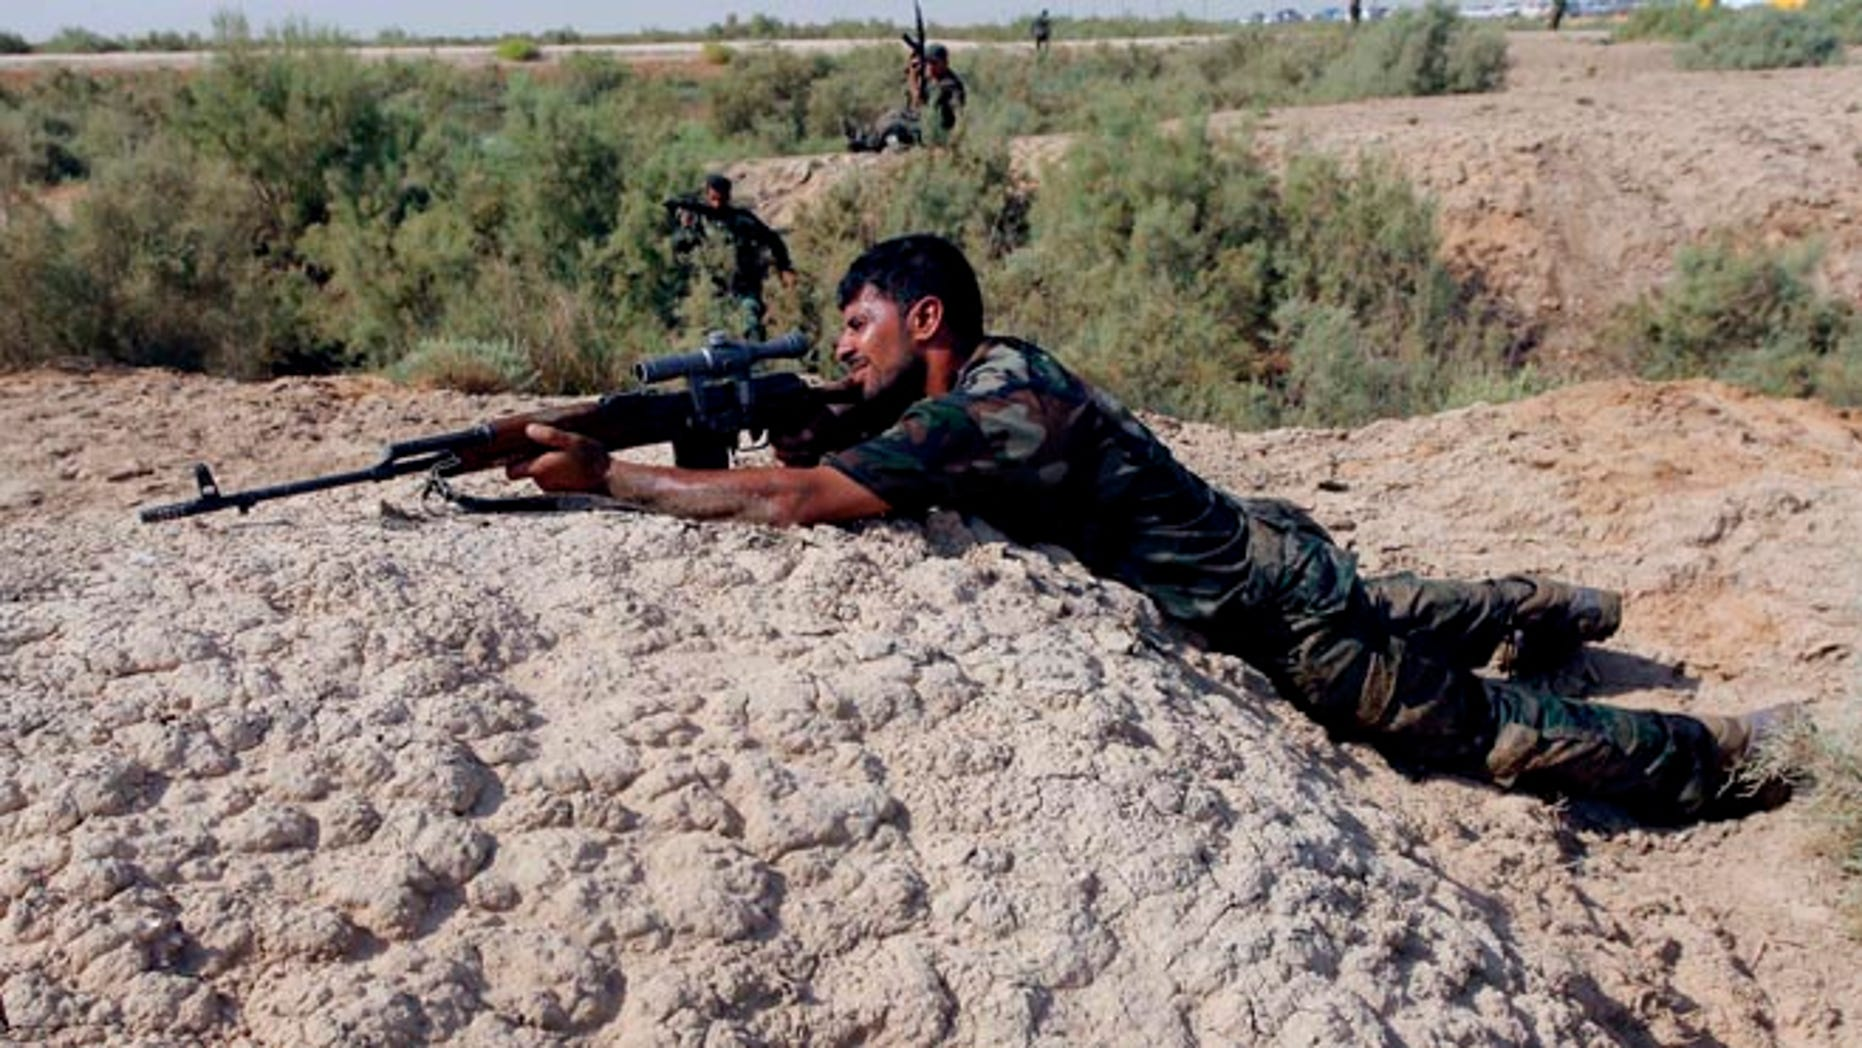 FILE: August 23, 2014: A Shite fighter, who has joined in the fight against Islamic State, taking part in field training in Najaf, Iraq.